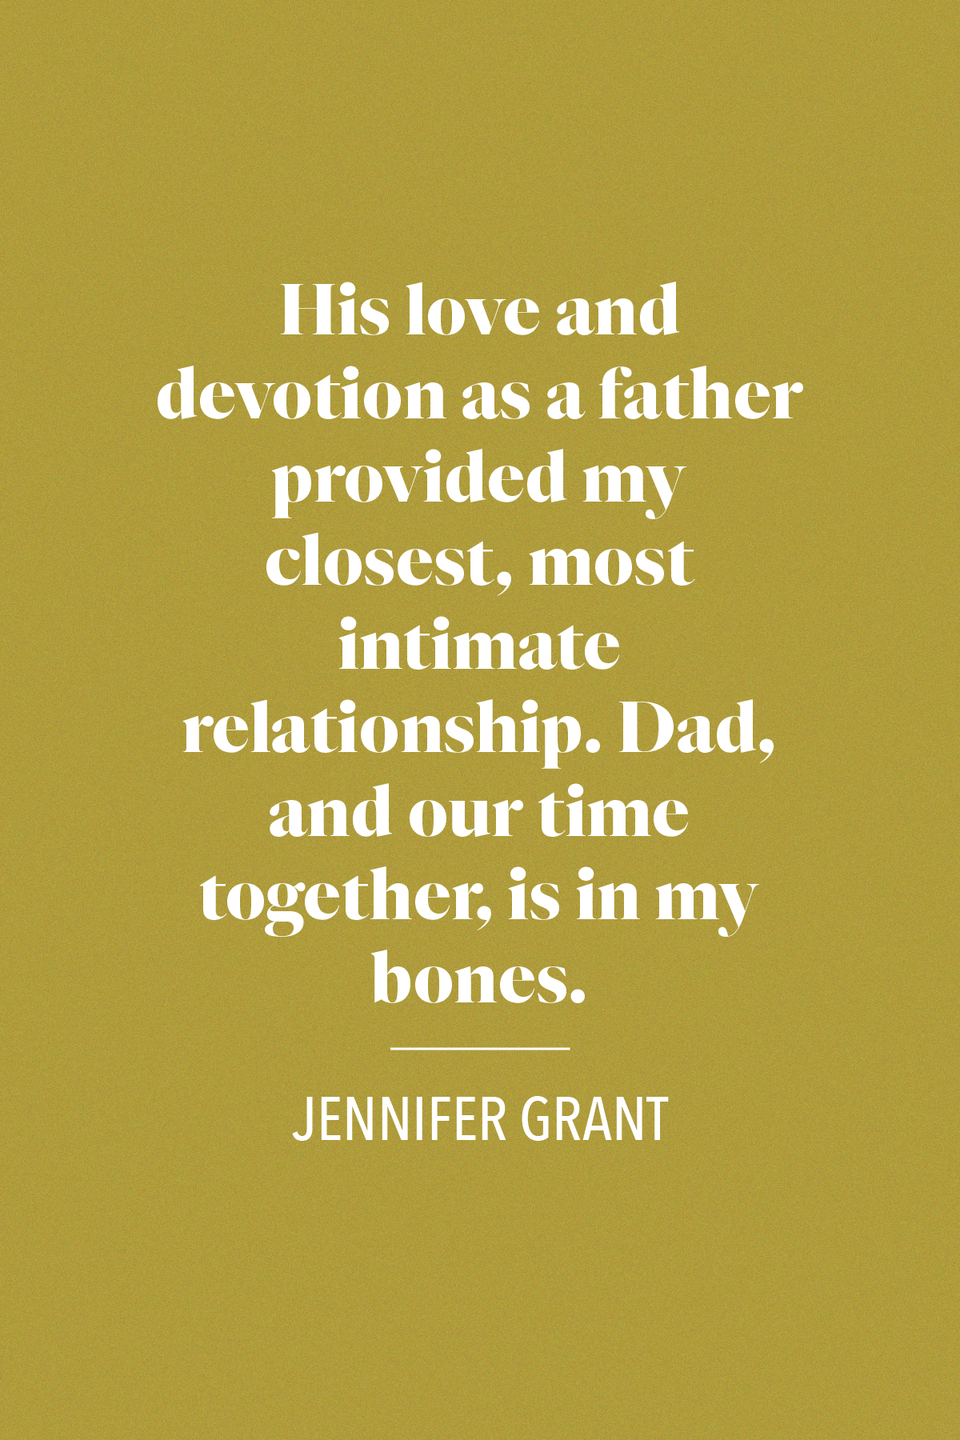 "<p>More from Jennifer Grant in her book <em><a href=""https://www.amazon.com/Good-Stuff-Reminiscence-Father-Grant/dp/0307267105?tag=syn-yahoo-20&ascsubtag=%5Bartid%7C10072.g.32909234%5Bsrc%7Cyahoo-us"" rel=""nofollow noopener"" target=""_blank"" data-ylk=""slk:Good Stuff"" class=""link rapid-noclick-resp"">Good Stuff</a></em>, she wrote, ""His love and devotion as a father provided my closest, most intimate relationship. Dad, and our time together, is in my bones.""</p>"